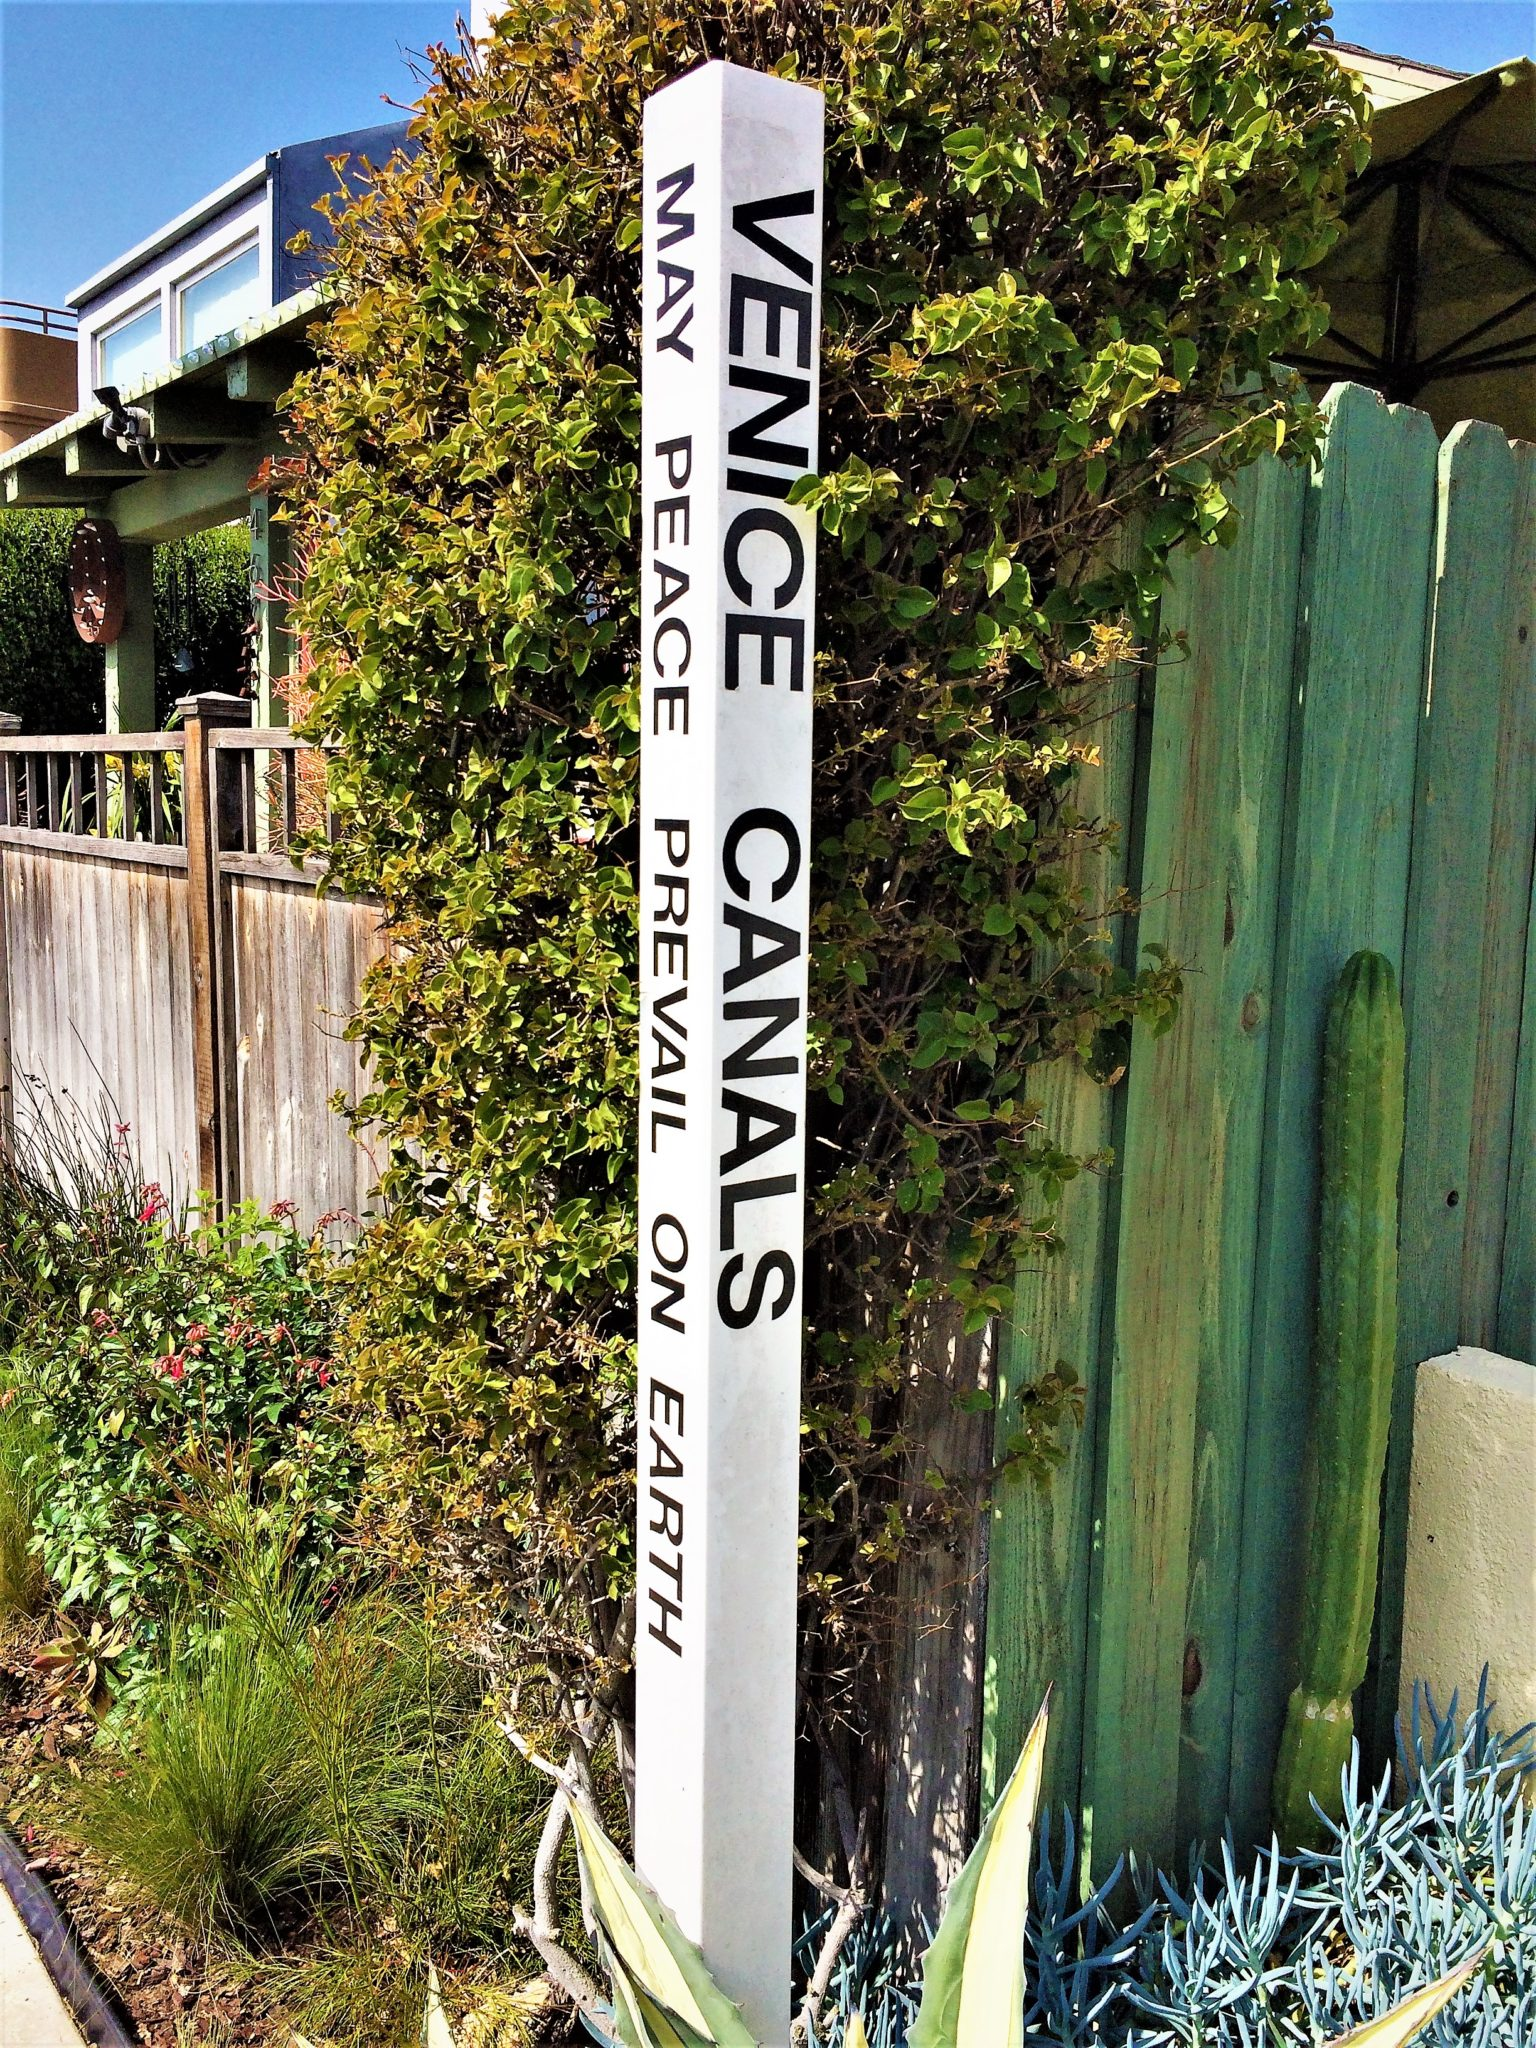 Venice canals sign, may peace prevail on earth, free things to do in los angeles, california